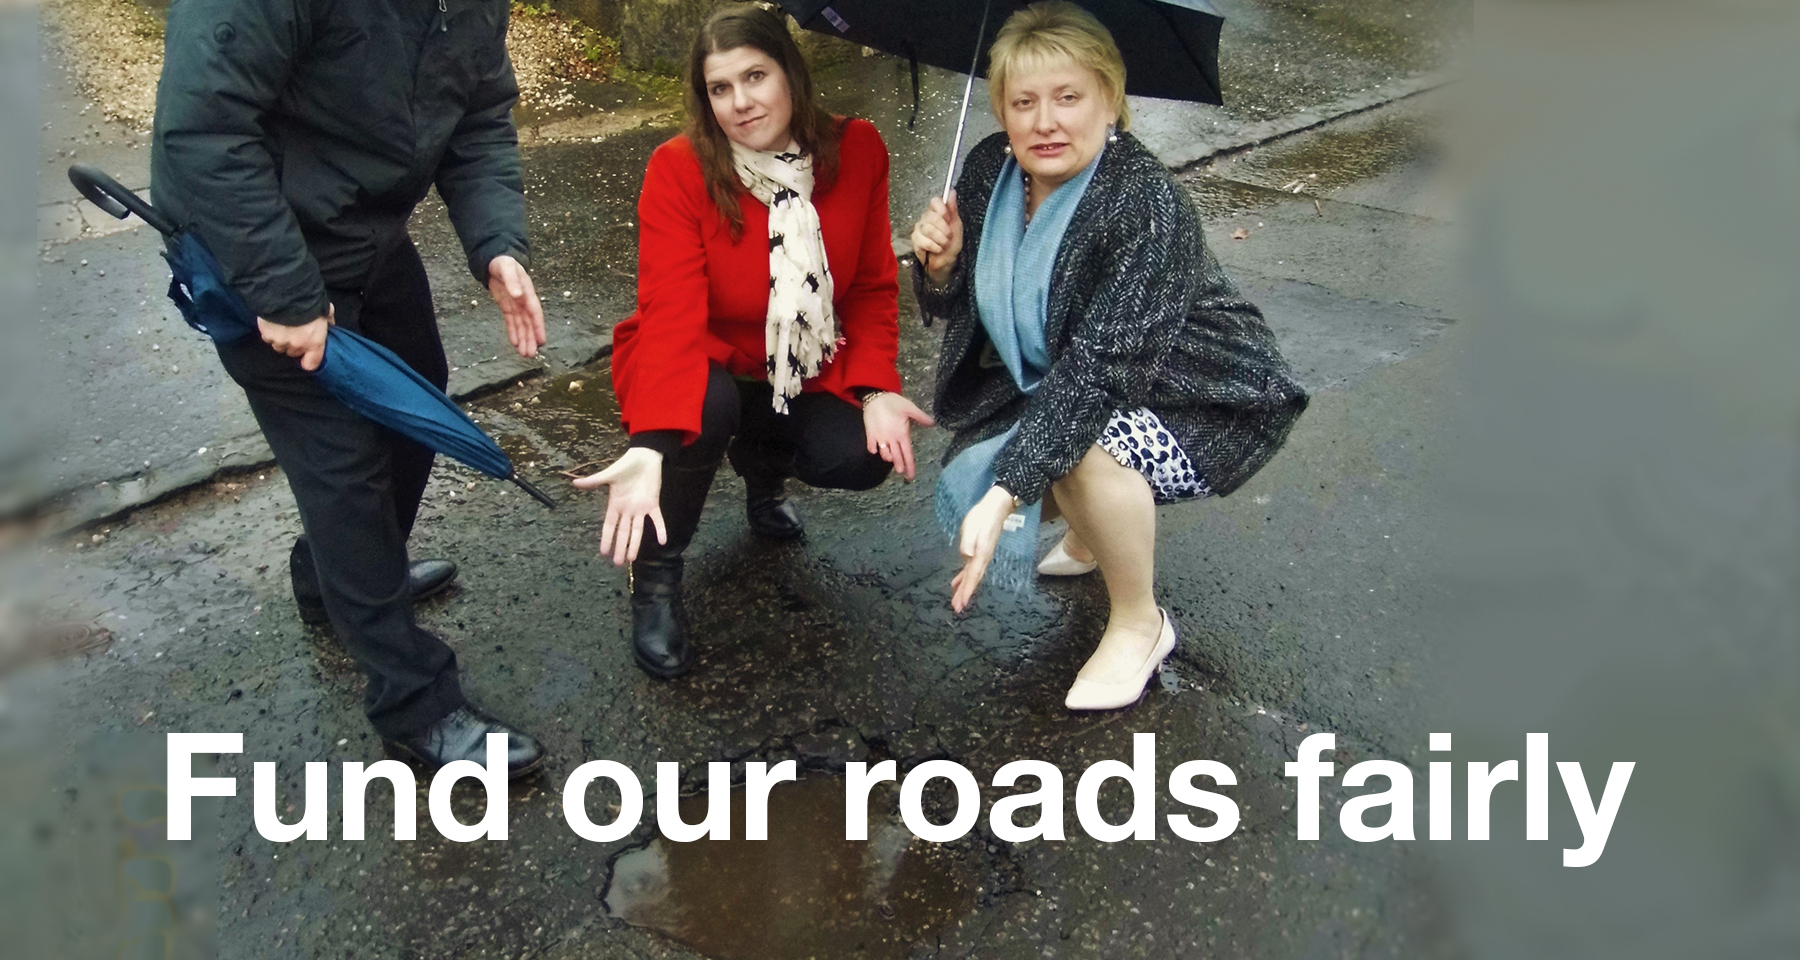 Fund our roads fairly